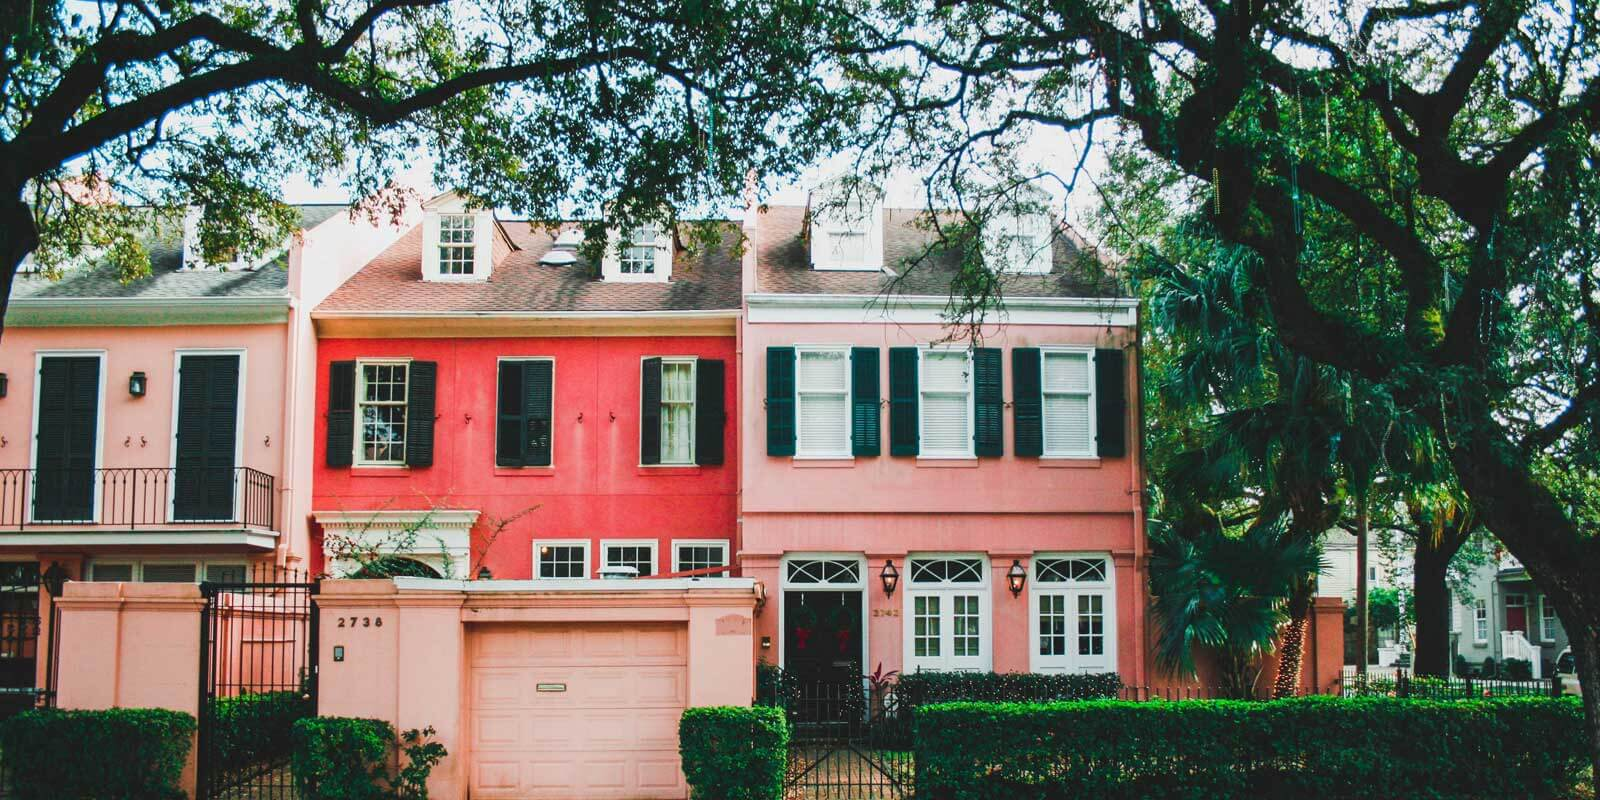 Salmon pink and florescent red townhomes set amidst trees and shrubs covered in Mardi Gras beads.